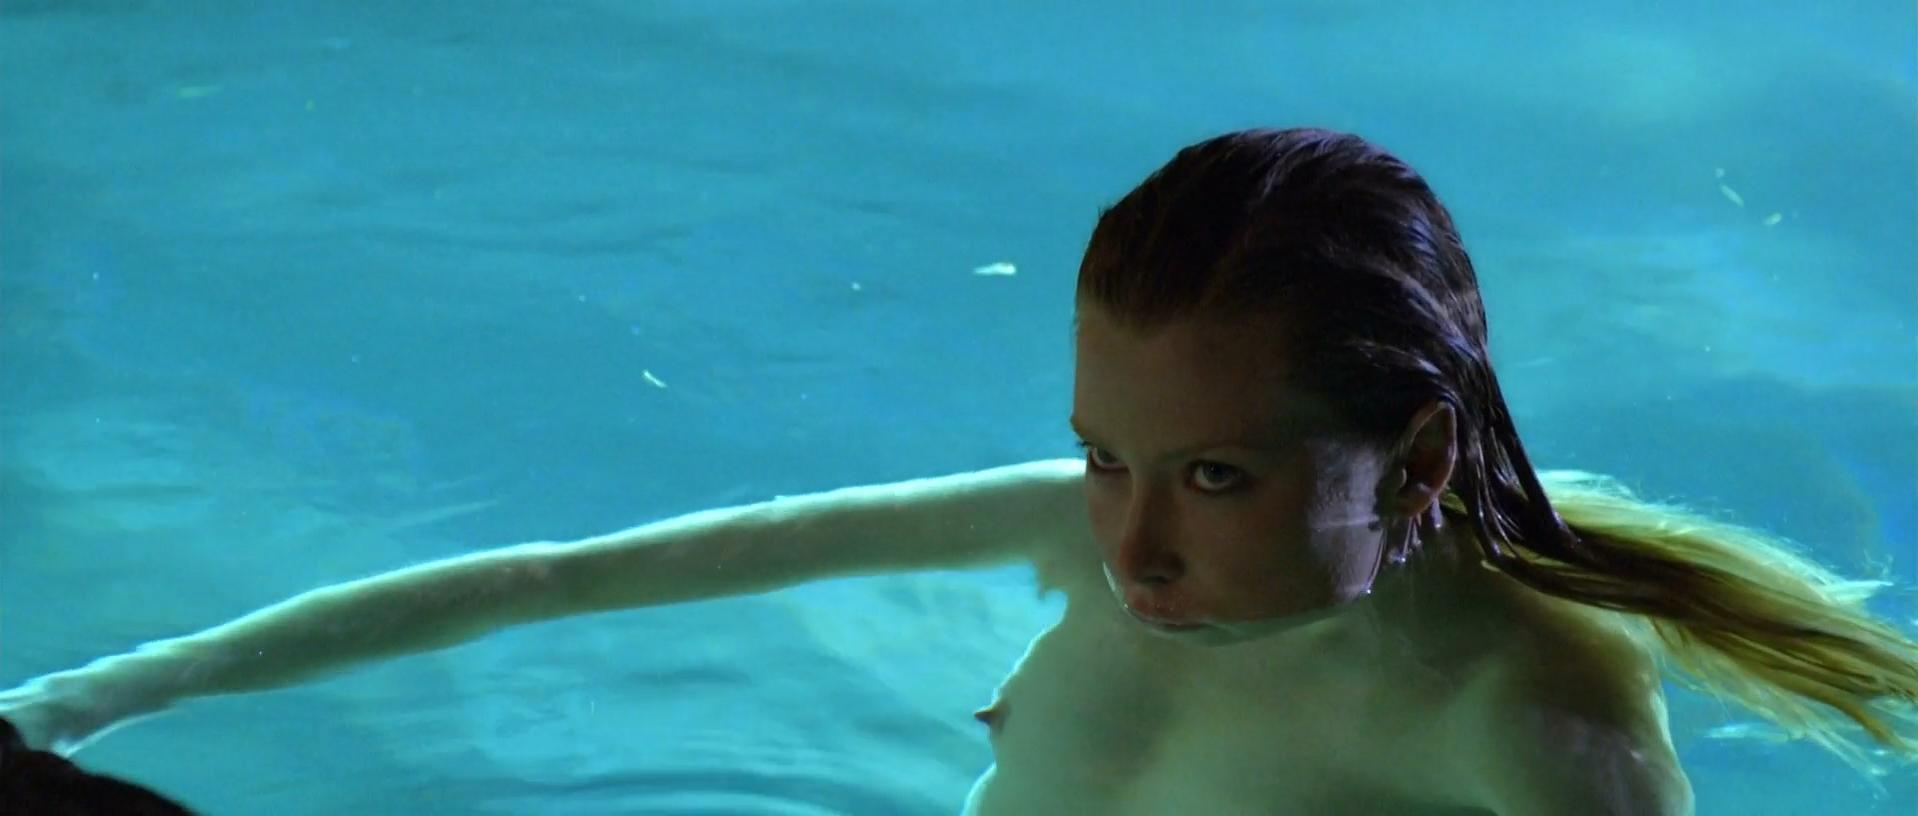 Emma Booth nude - Swerve (2011)